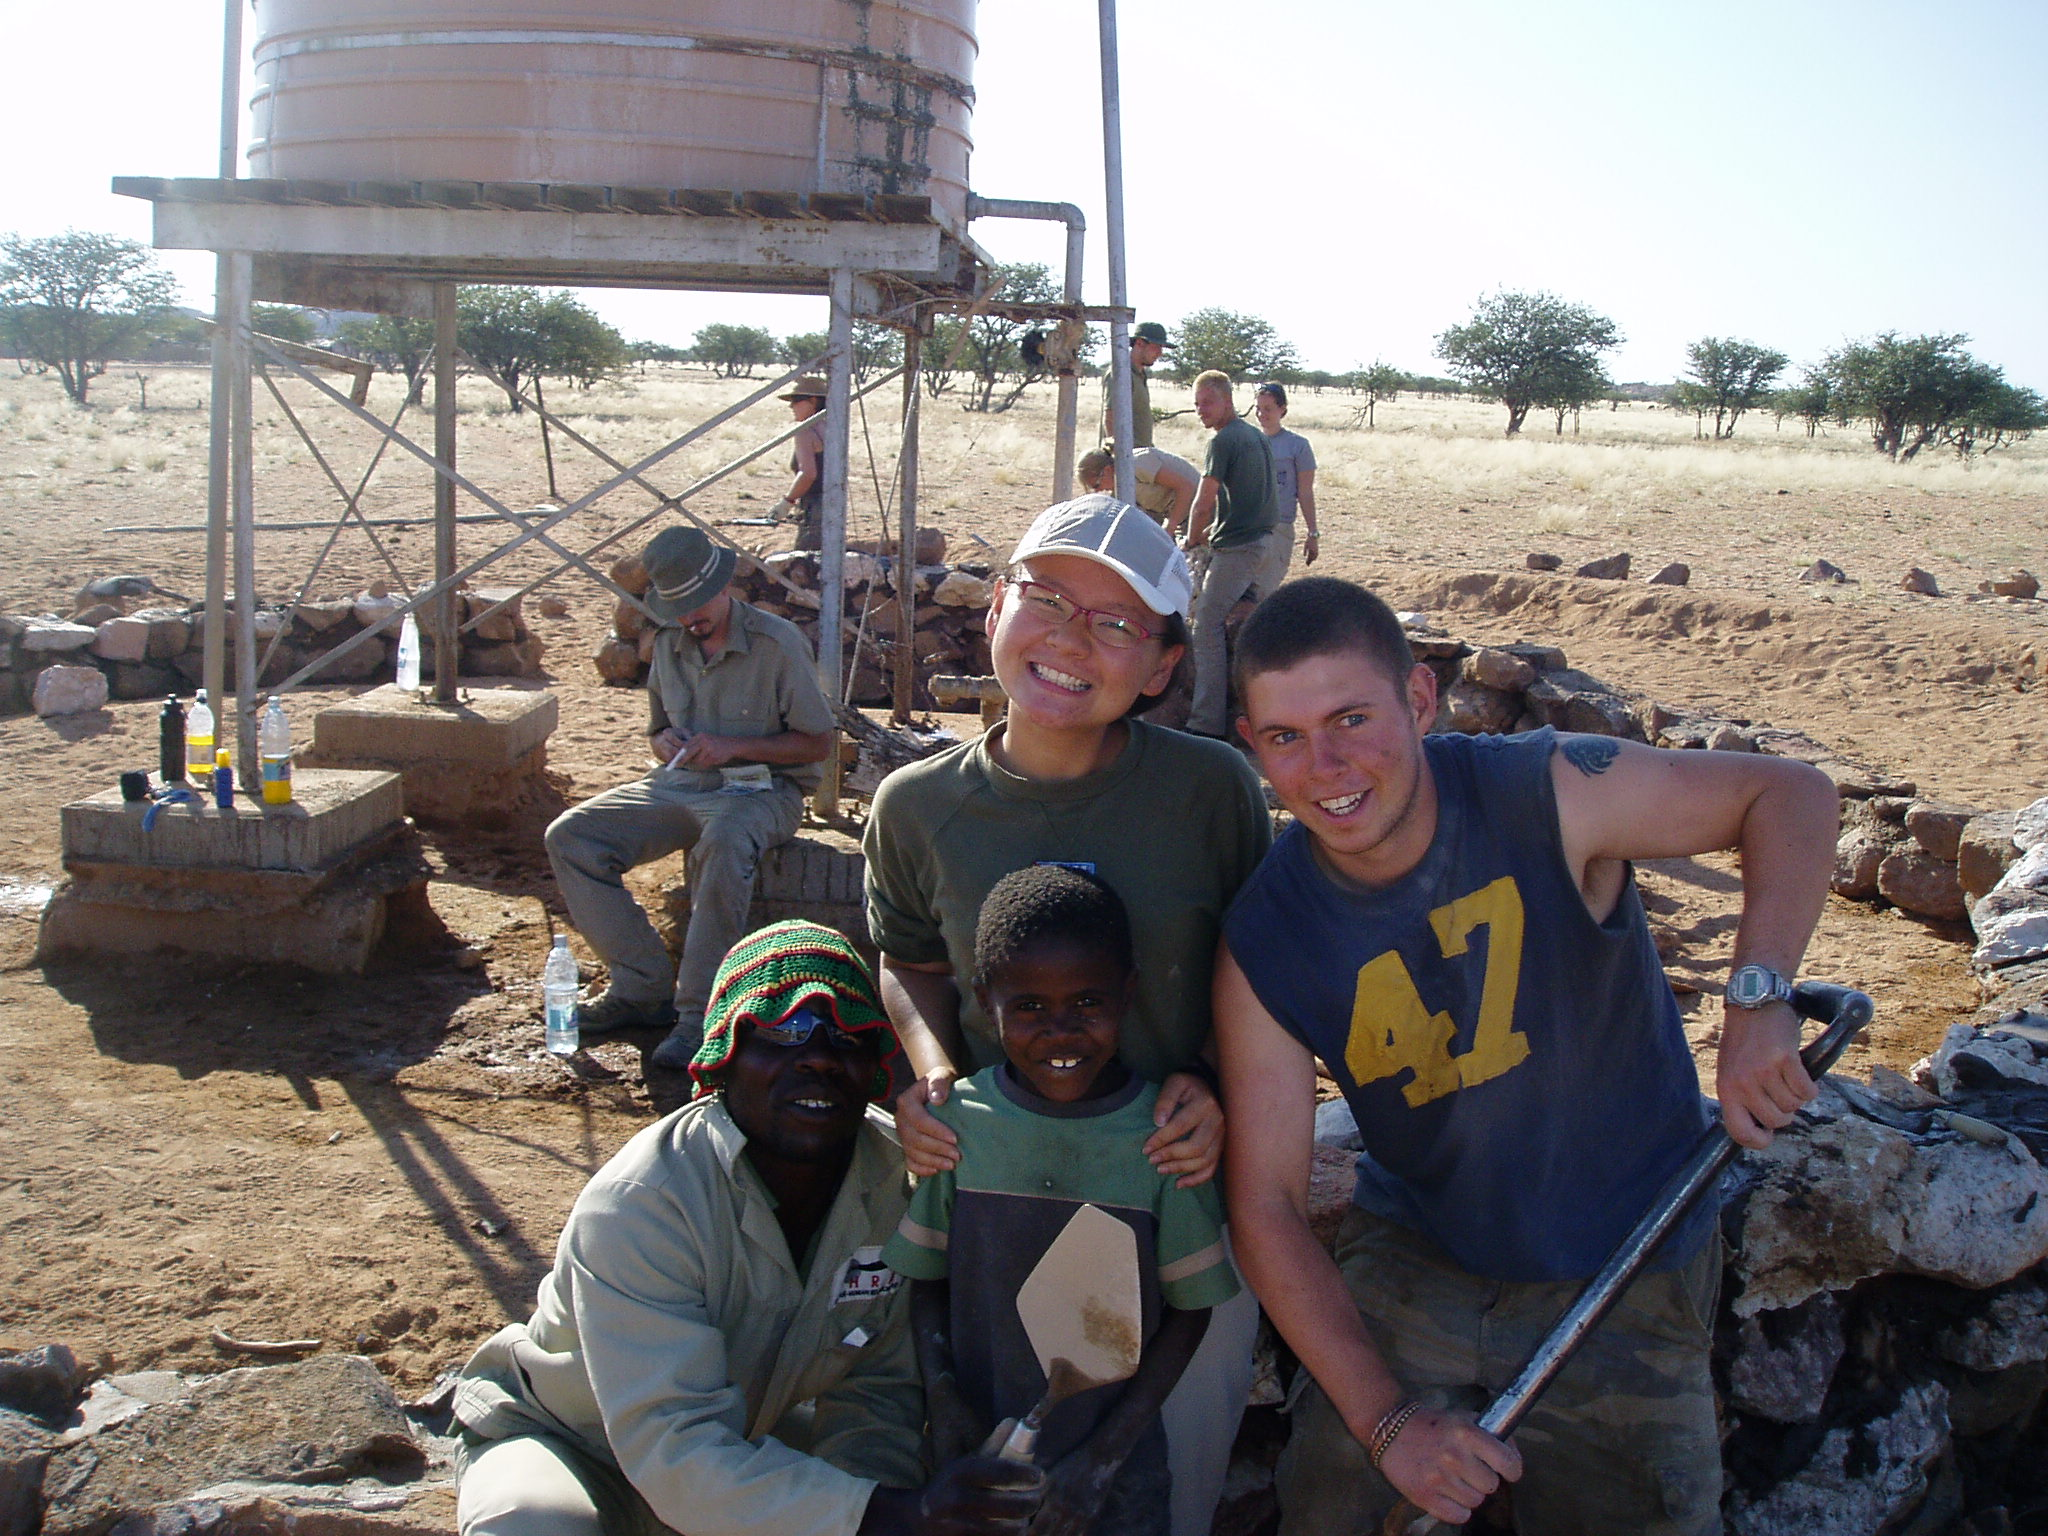 Volunteer  for the  Elephant Human Relations Aid ,  Namibia .  Along with other volunteers, I helped build a wall around a water well for the local farmers which prevents elephants from entering. As the elephants are no longer entering and a threat to local farmers' water resources, they are less likely to be shot.